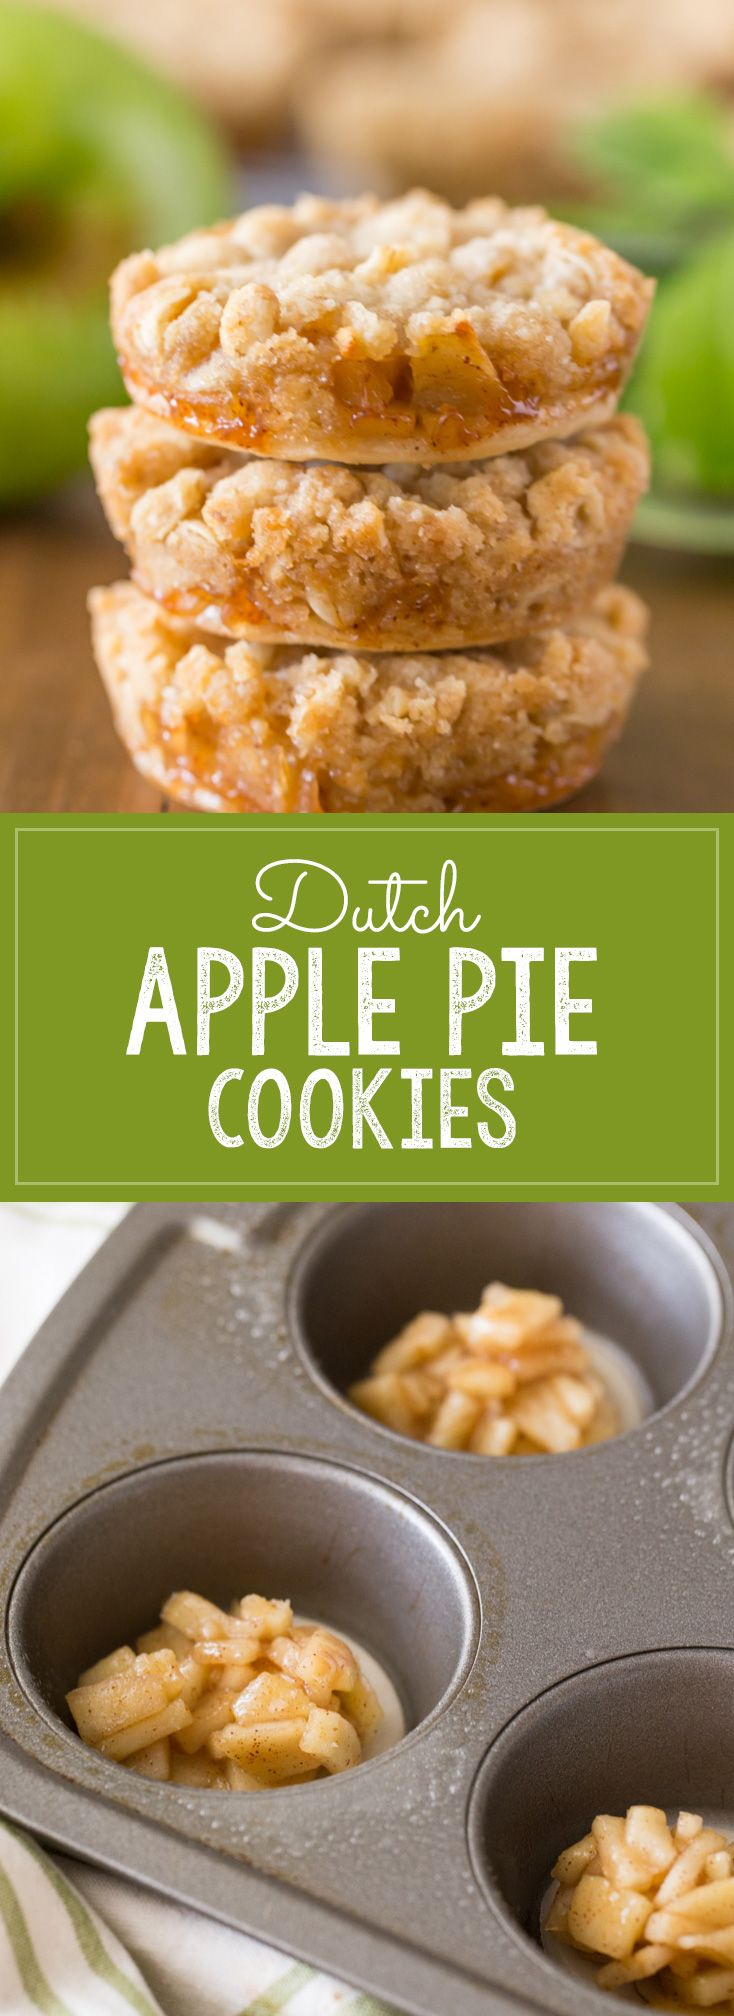 Dutch Apple Pie Cookies